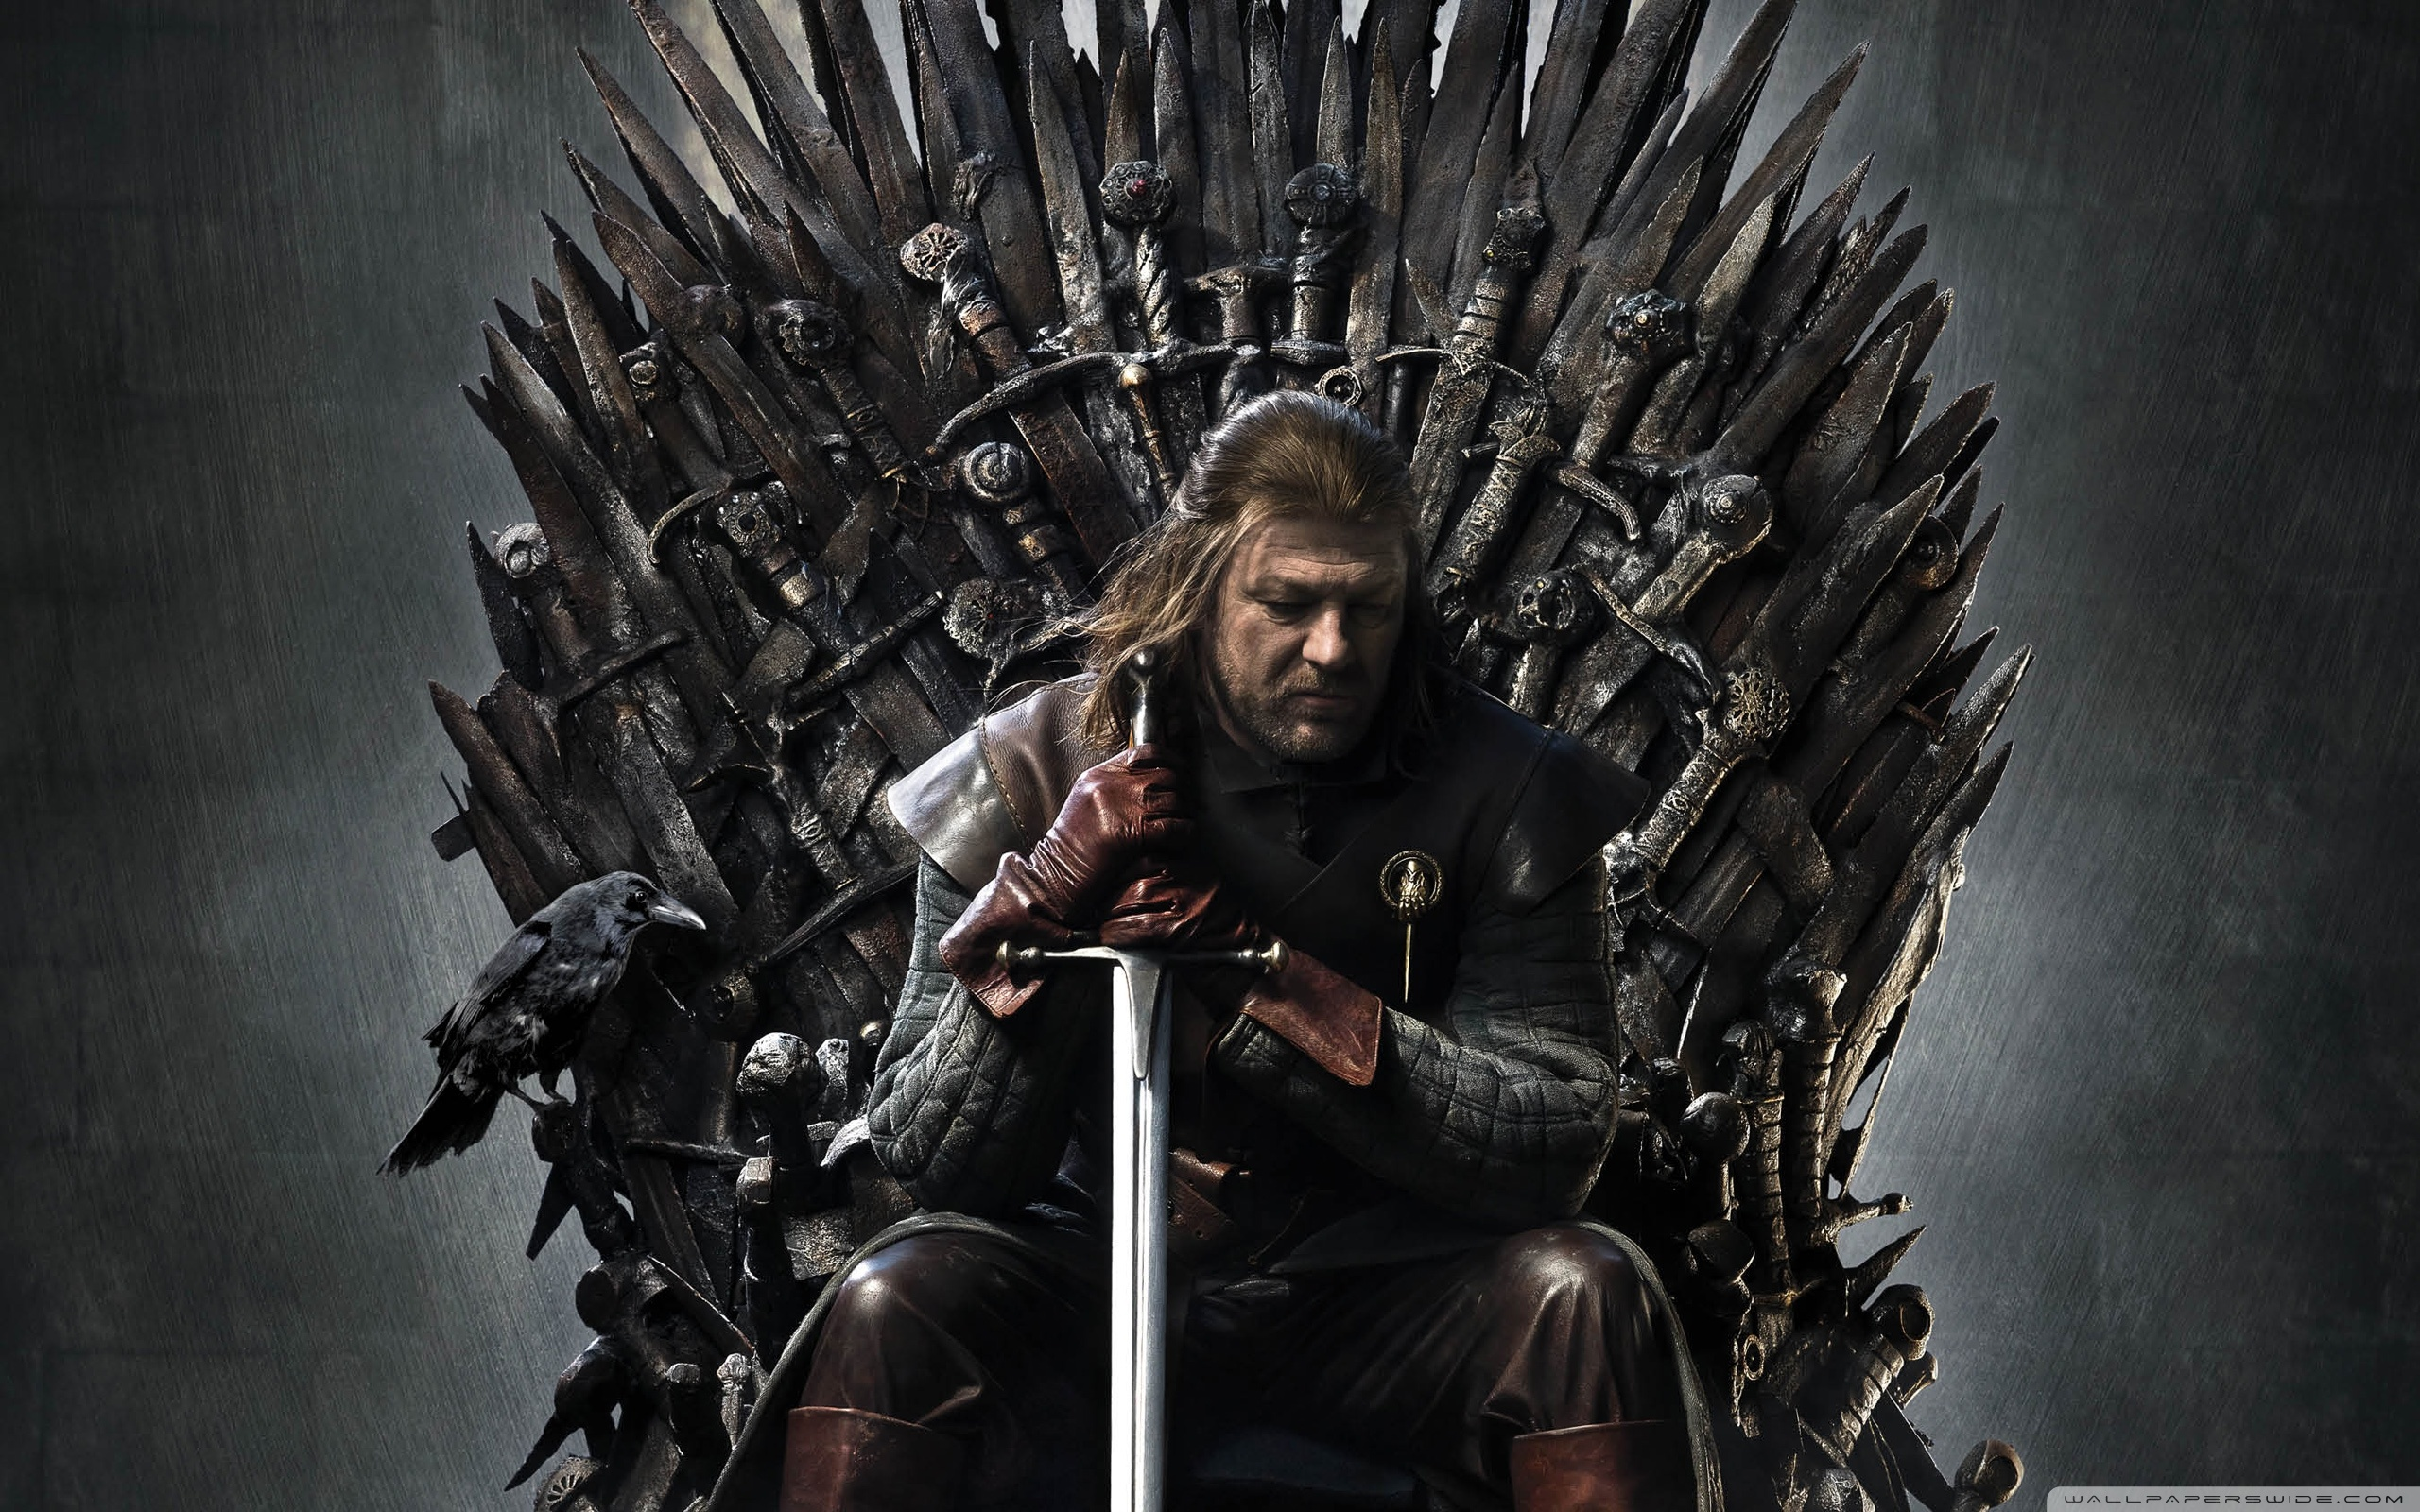 Download Game Of Thrones 2013 HD Wallpaper 2006 Full Size 2560x1600